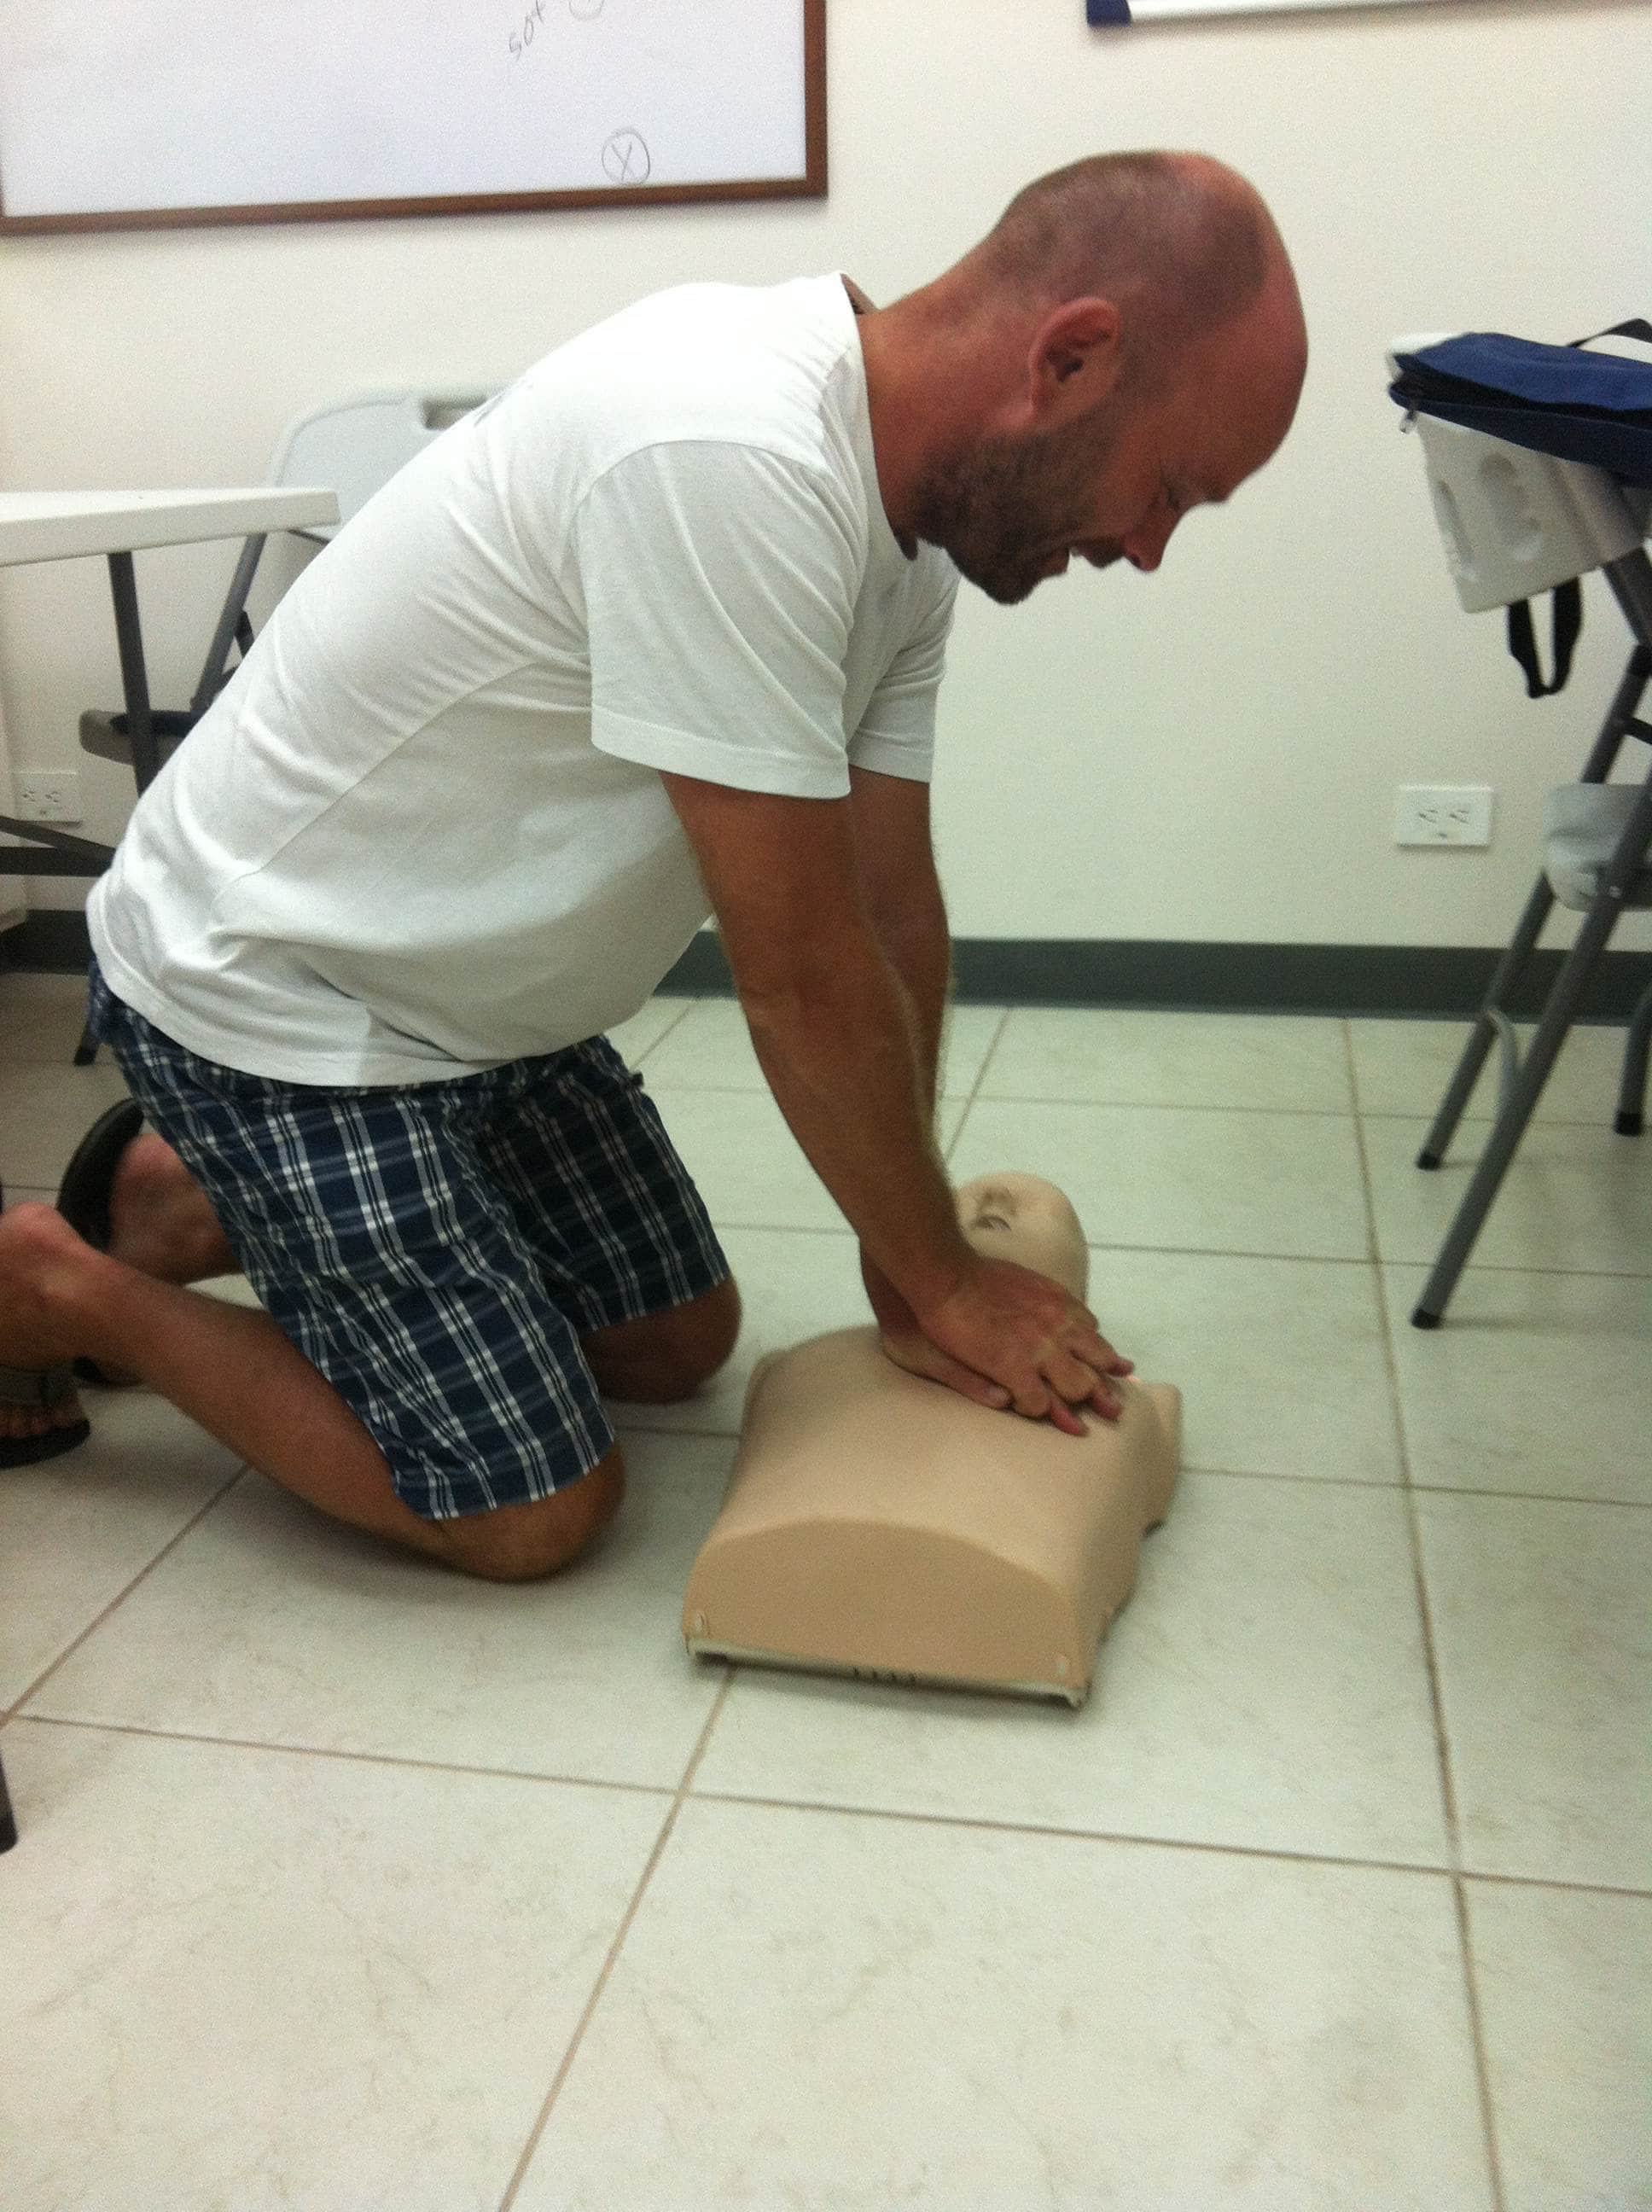 Practicing chest compressions